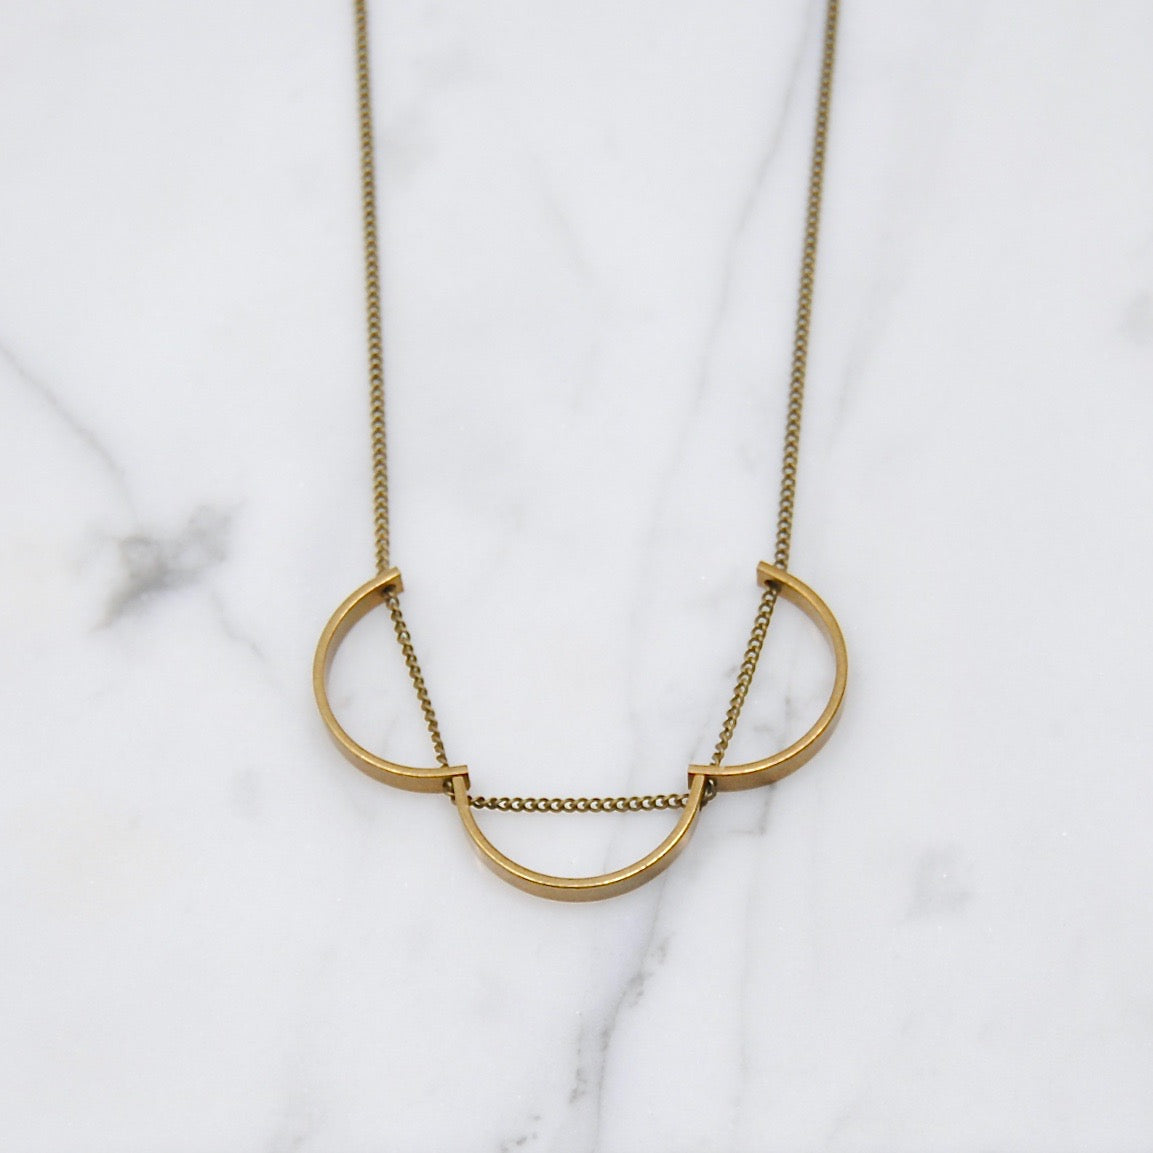 THREE CURVES NECKLACE